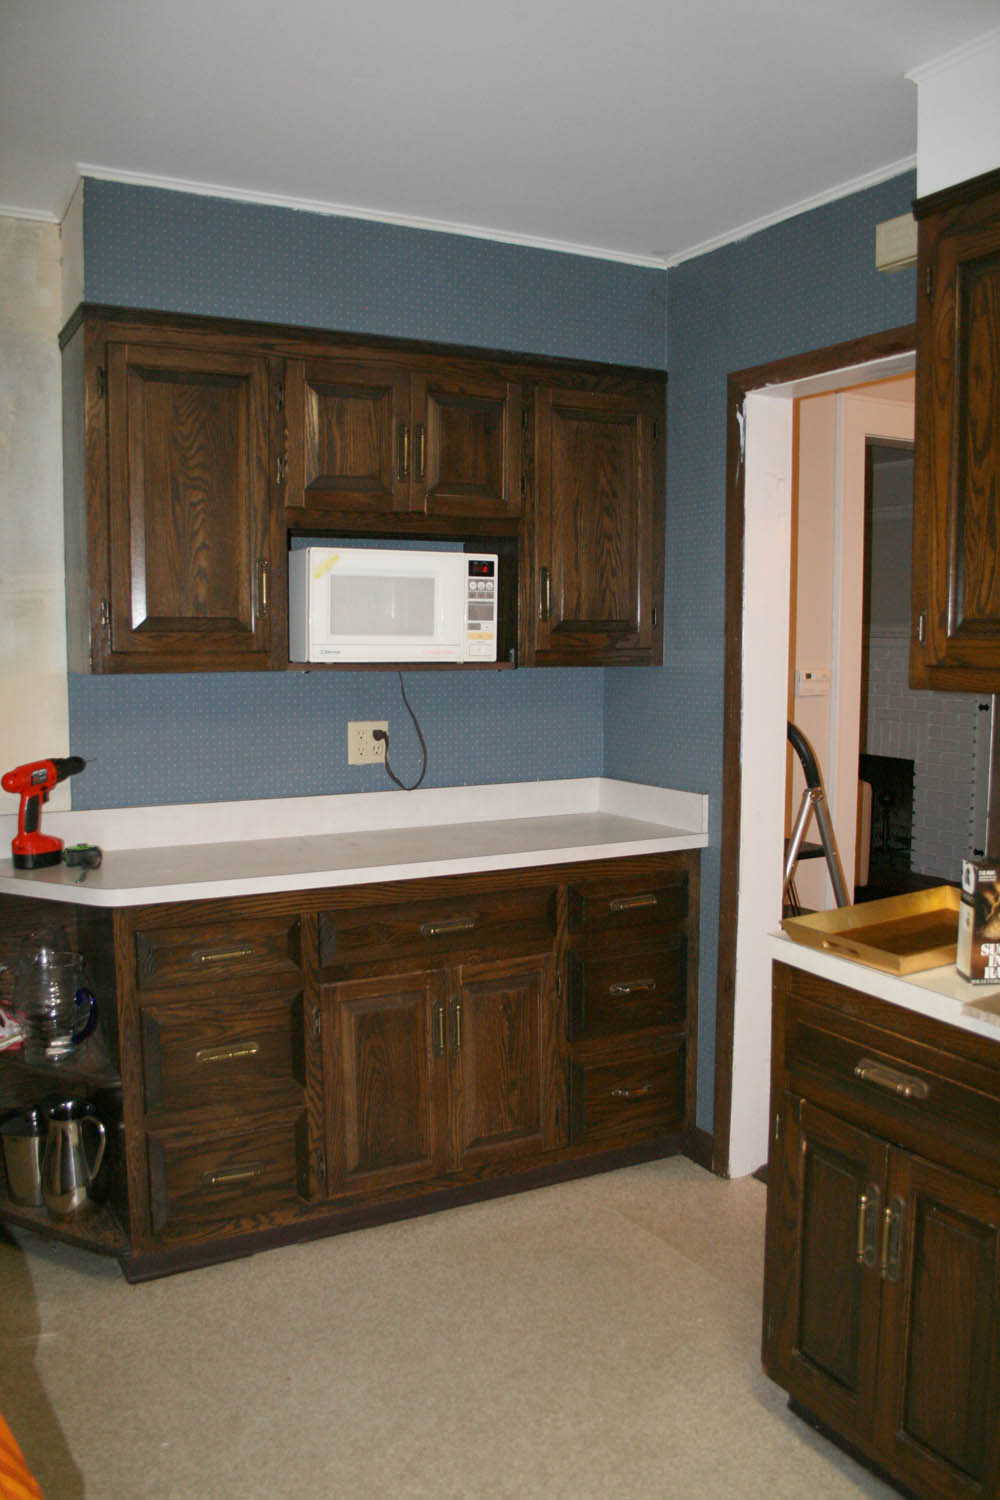 How Much To Paint Kitchen Cabinets Already Taken Apart